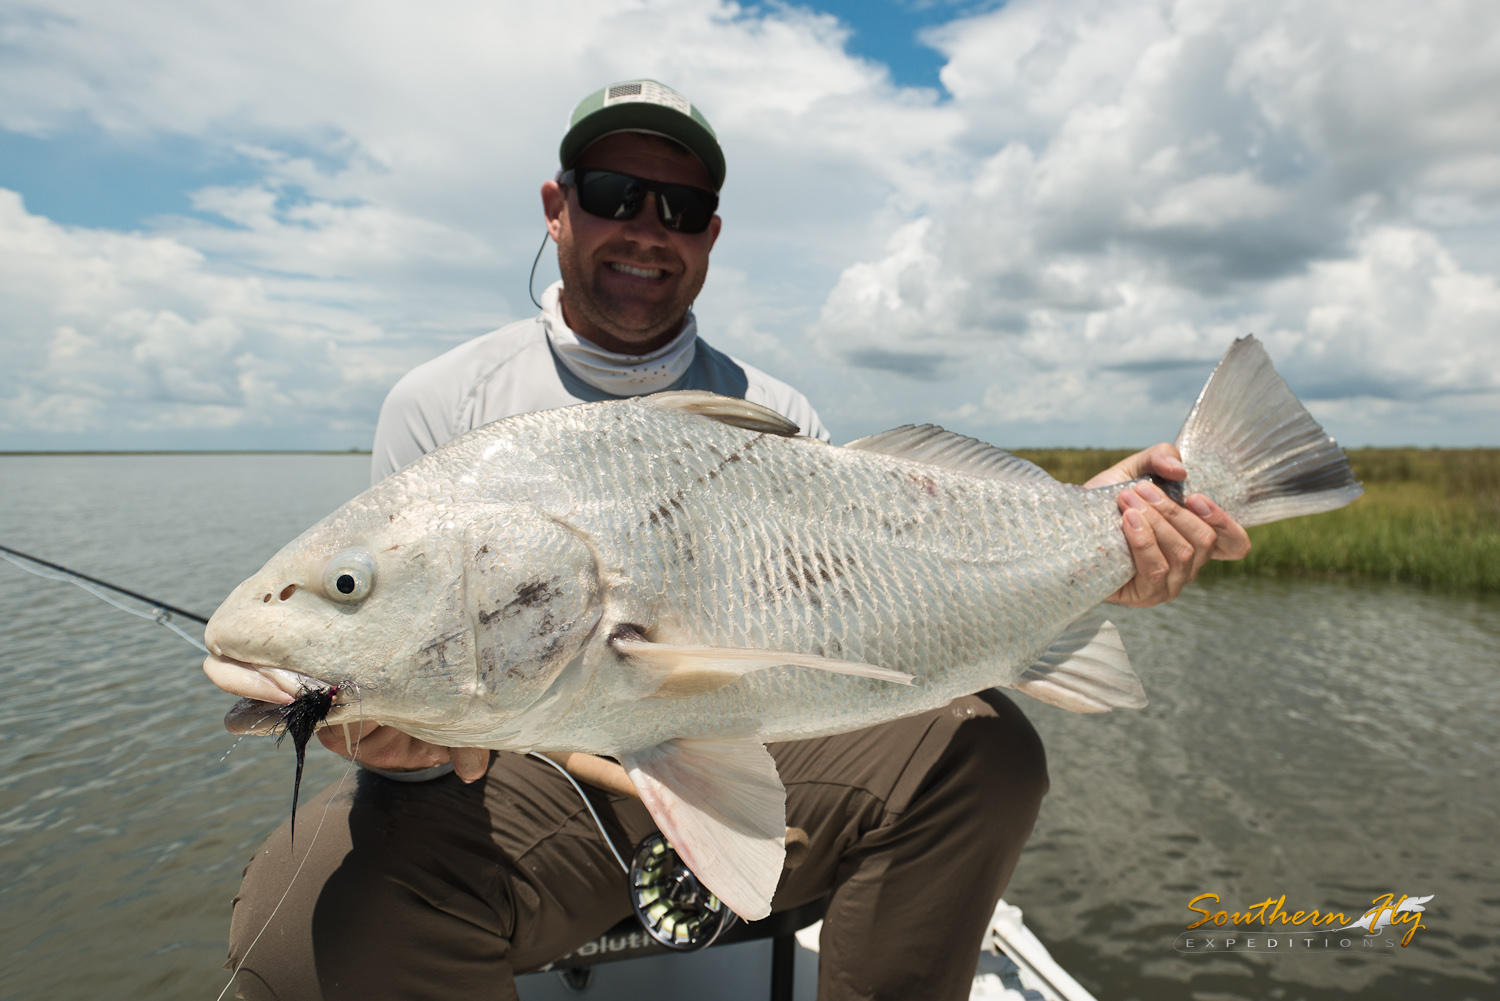 2019-07-29-30_SouthernFlyExpeditions_NewOrleans_AlanFeeser-9.jpg